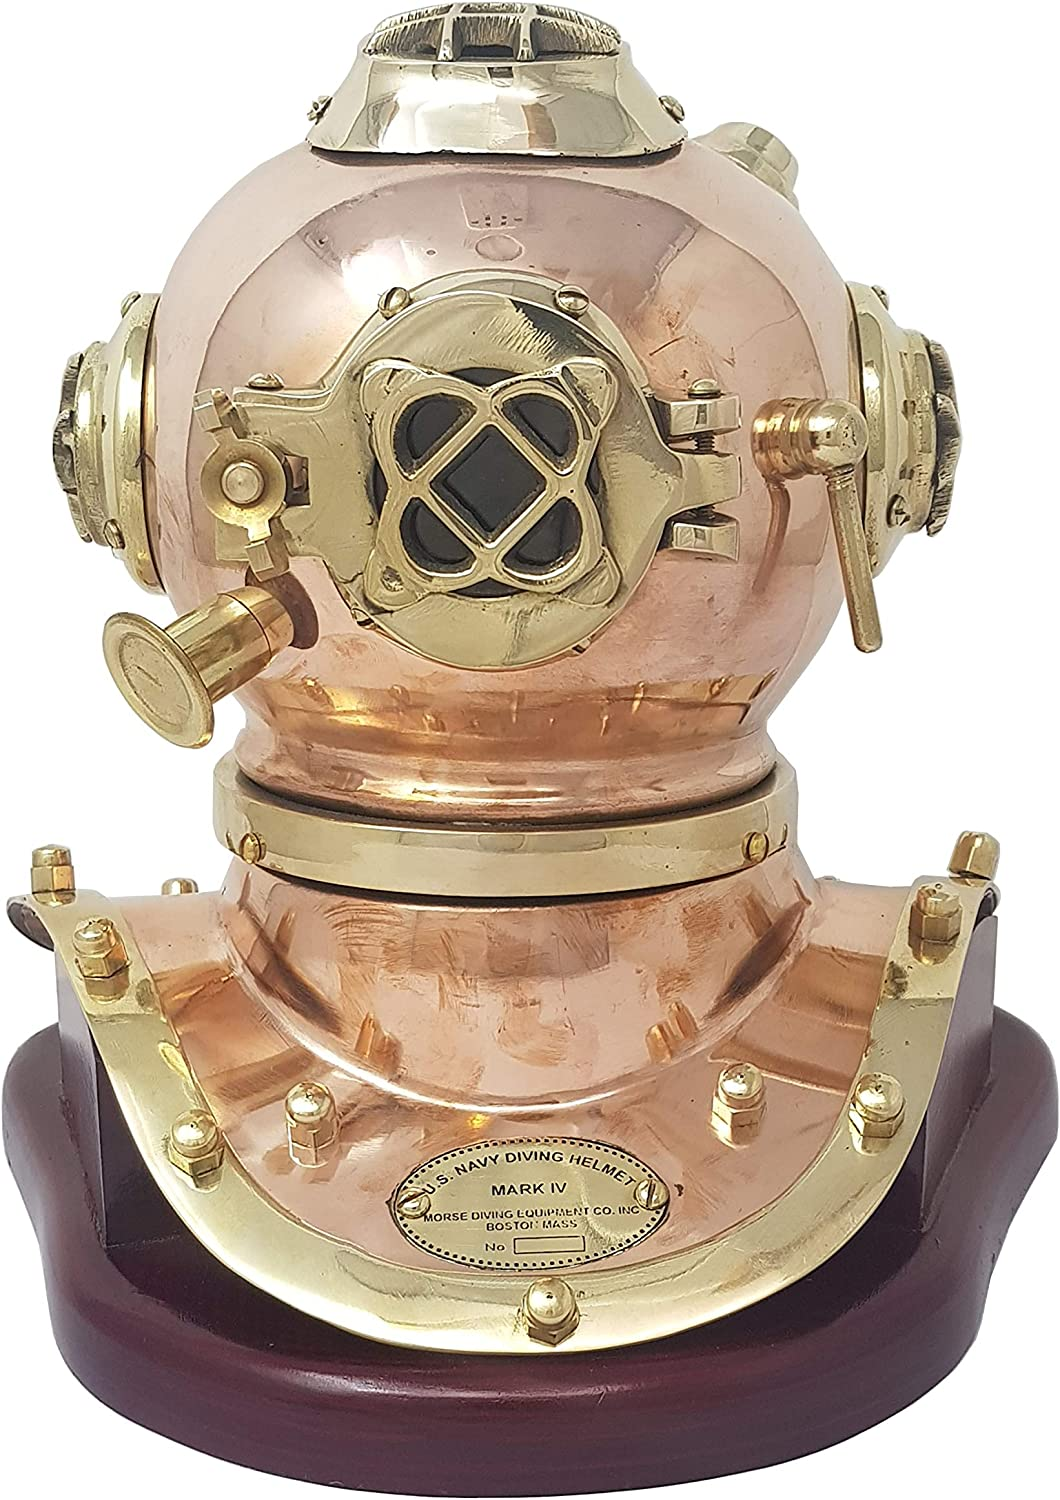 Brass Nautical - Medium Size Diving Helmet Replica on Fixed Base, Nautical Décor Marine Gift Diver Helmet Scuba Helmet Replica